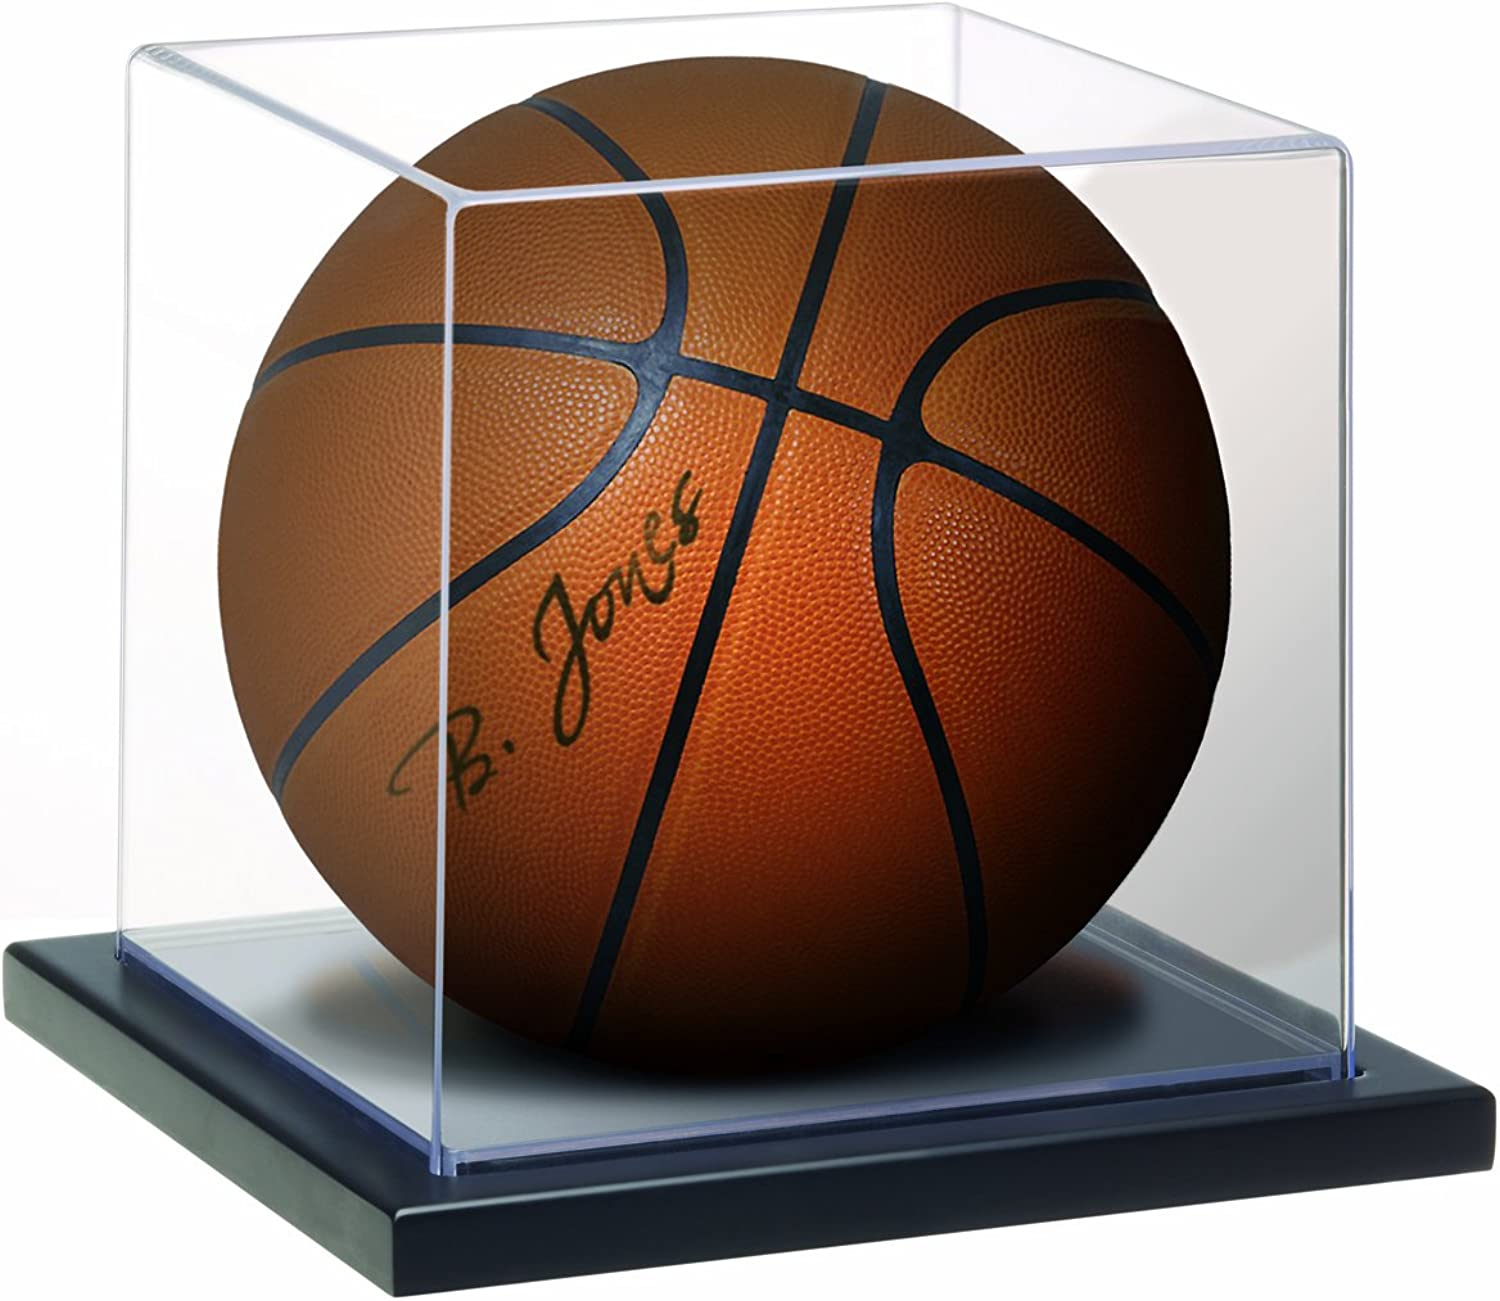 MCS Full Size BasketballSoccer Ball Display Case, Clear with Black Base (53975)